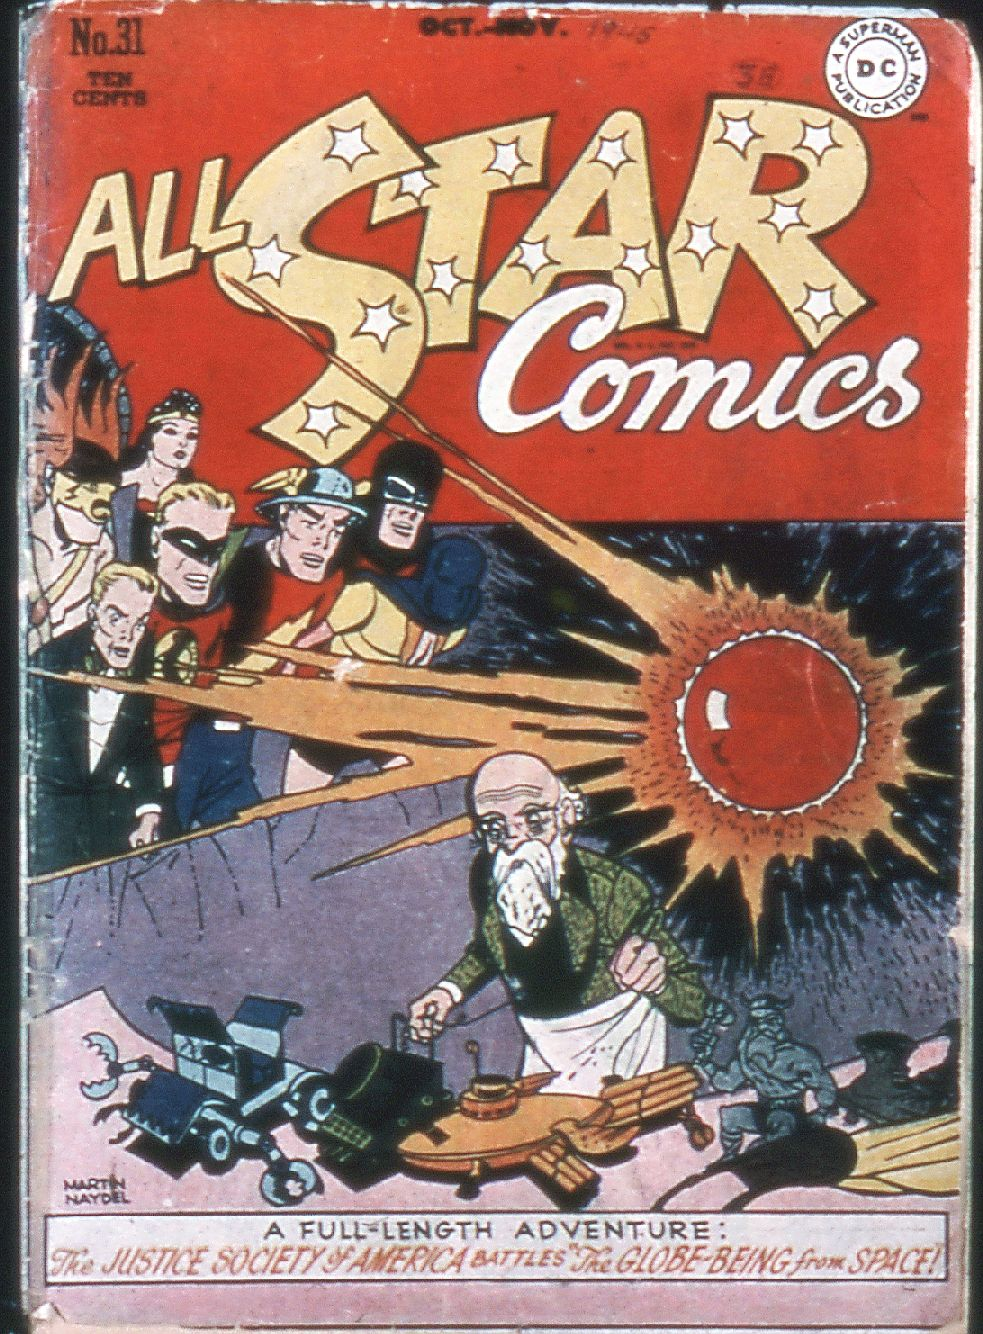 All-Star Comics (1940) issue 31 - Page 1